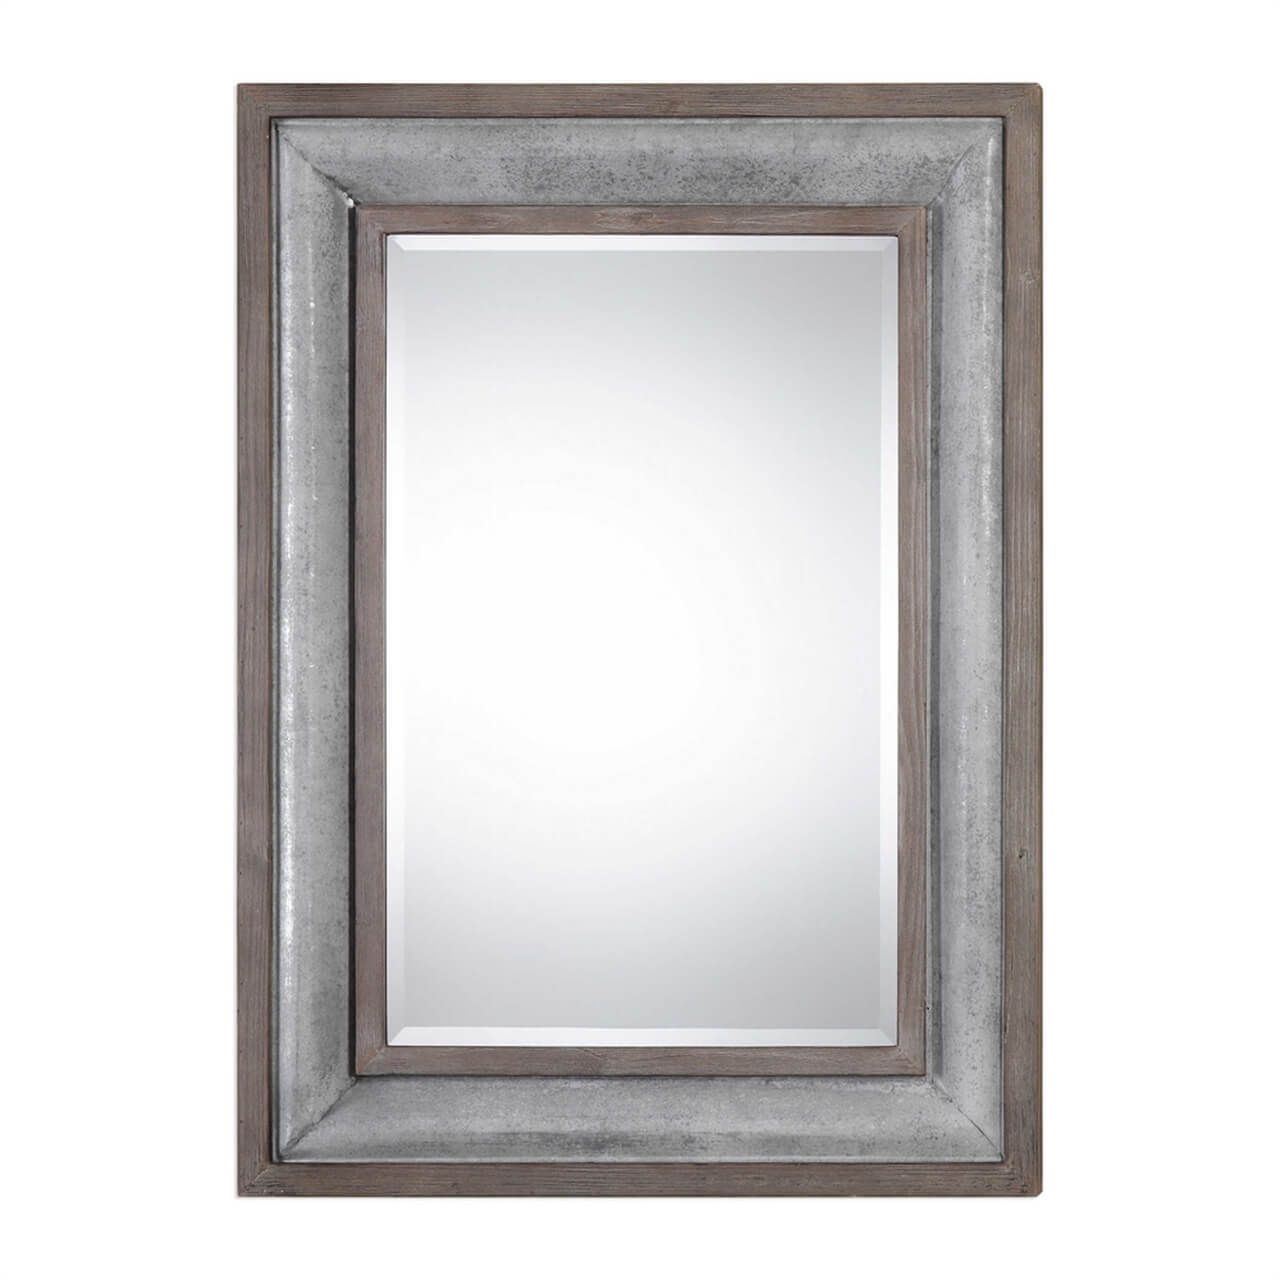 Rustic Mirrors | Wood, Metal & Farmhouse Framed Mirrors With Handcrafted Farmhouse Full Length Mirrors (View 25 of 30)